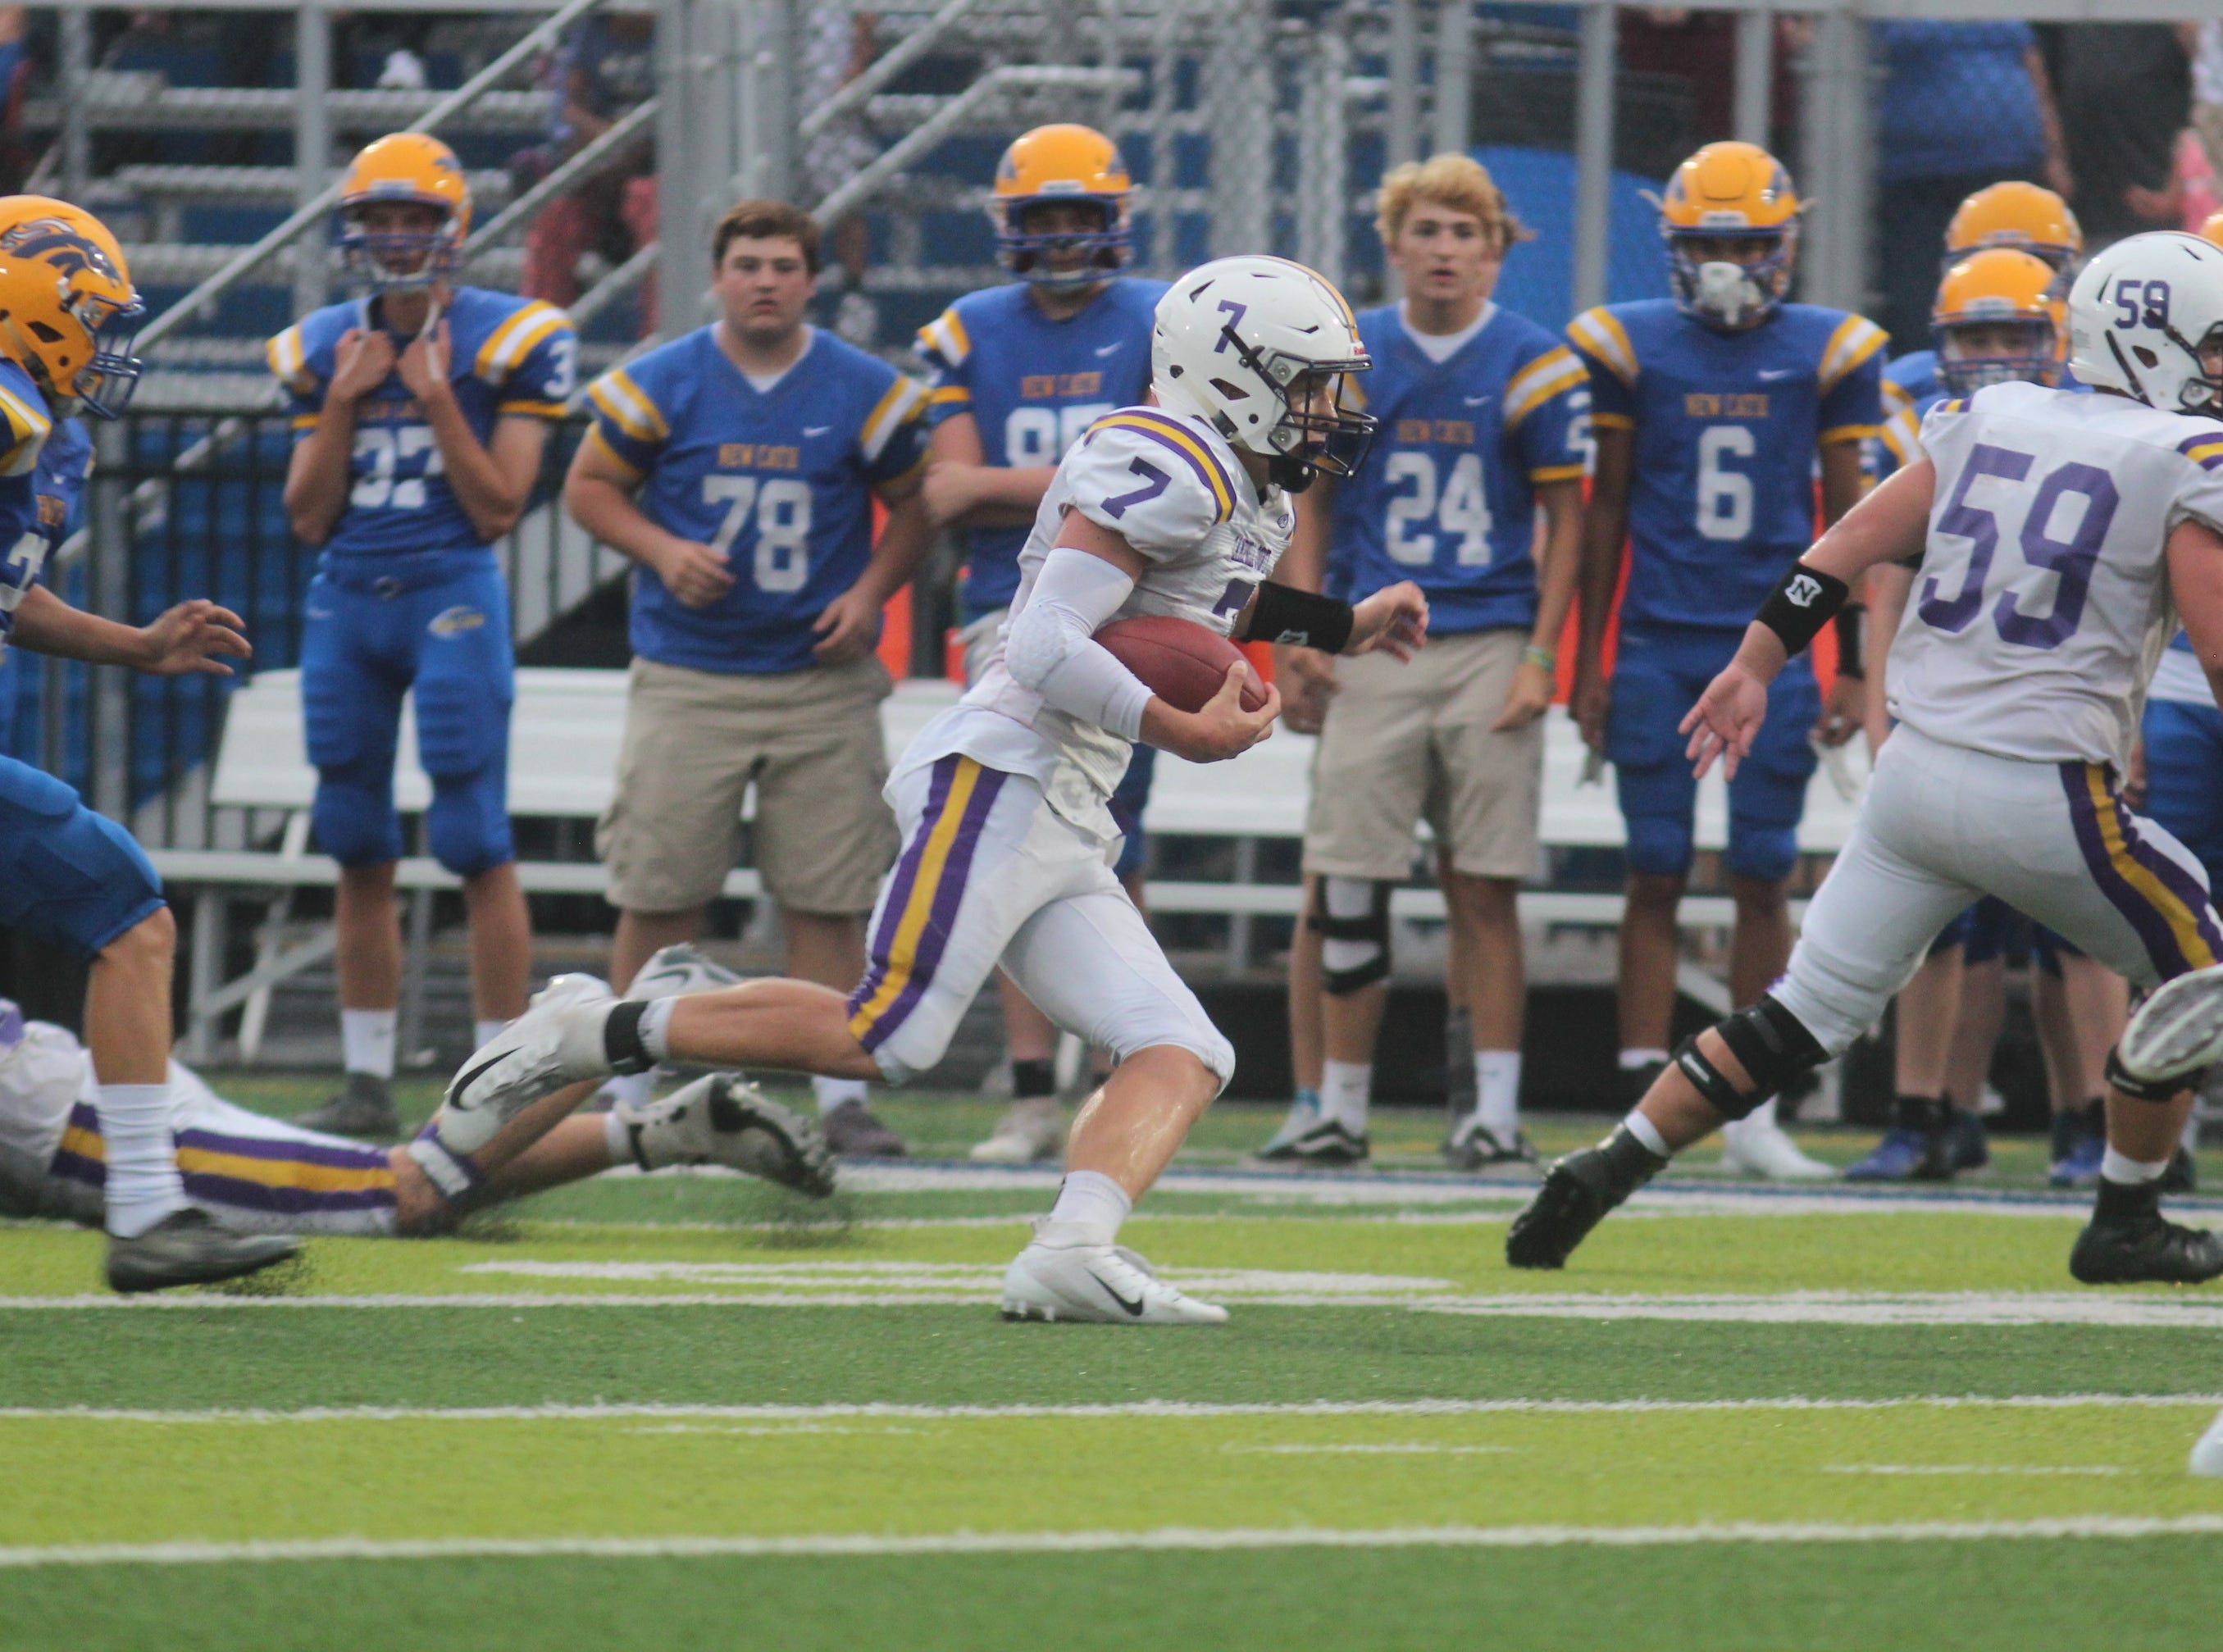 Campbell County senior Reid Jolly runs upfield for a big gain as Campbell County and Newport Central Catholic played a football game August 31, 2018 at Covington Catholic High School. Campbell County led 24-0 at halftime when the game was suspended due to lightning.